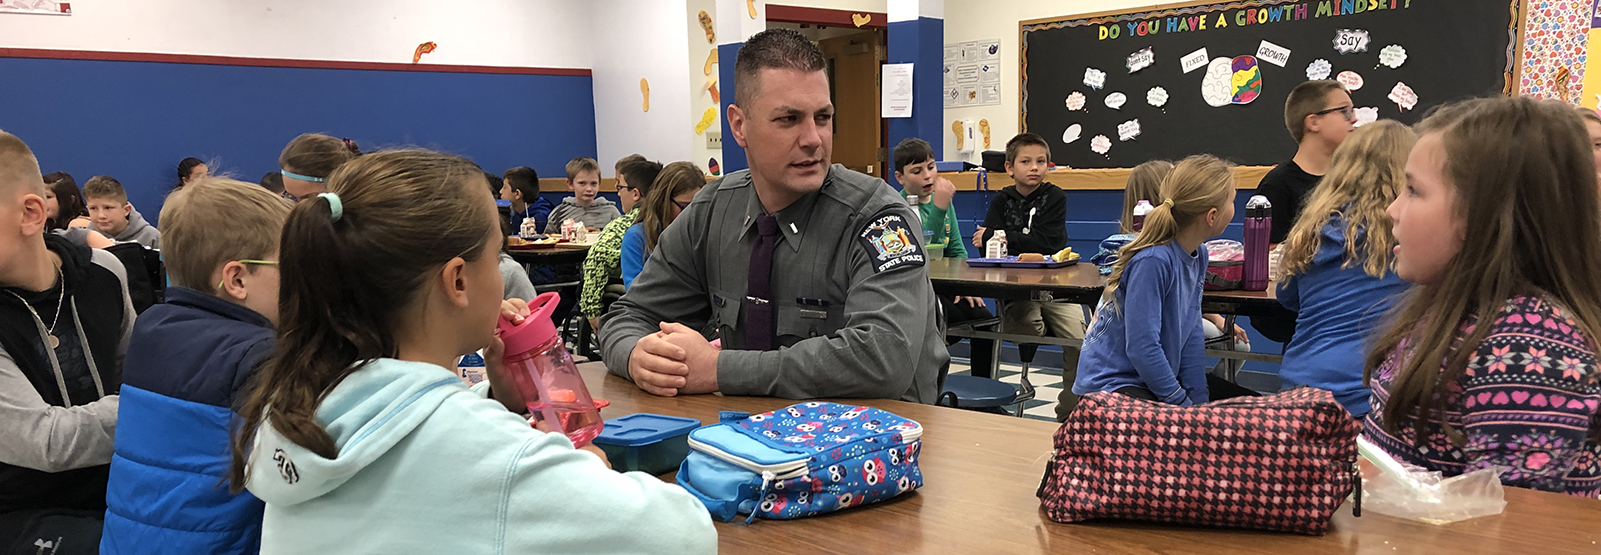 officer sits with students at lunch table